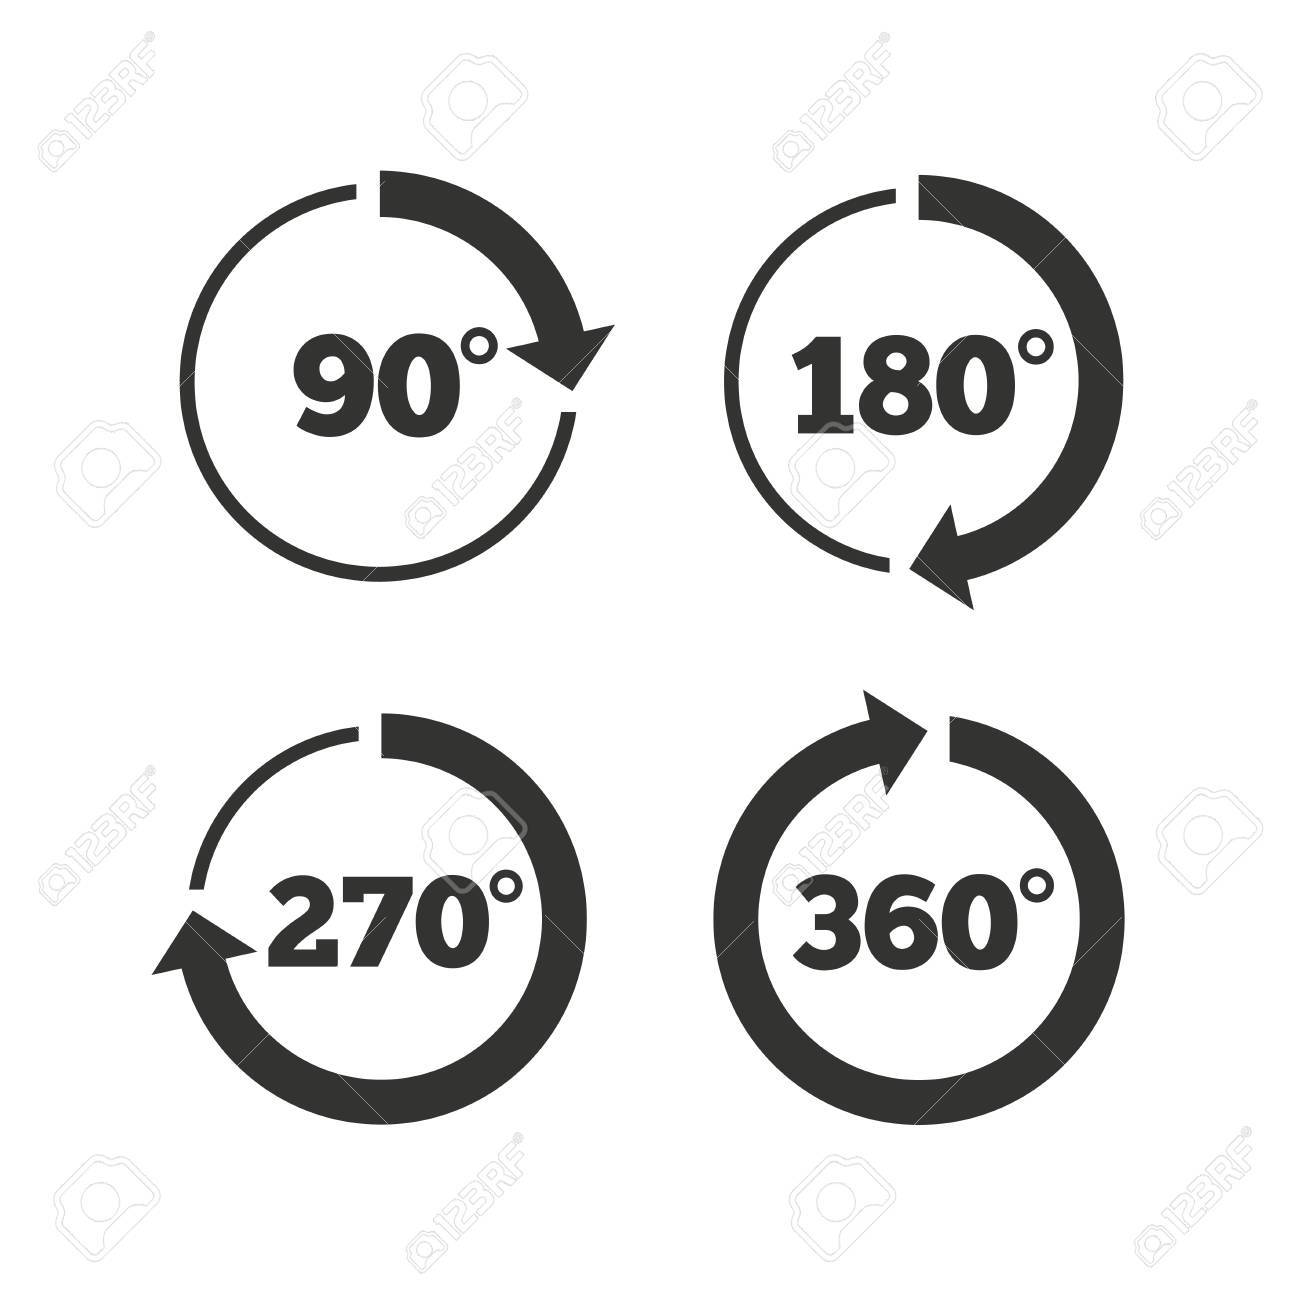 Type degrees symbol image collections symbol and sign ideas angle 45 360 degrees circle icons geometry math signs symbols angle 45 360 degrees circle icons biocorpaavc Choice Image